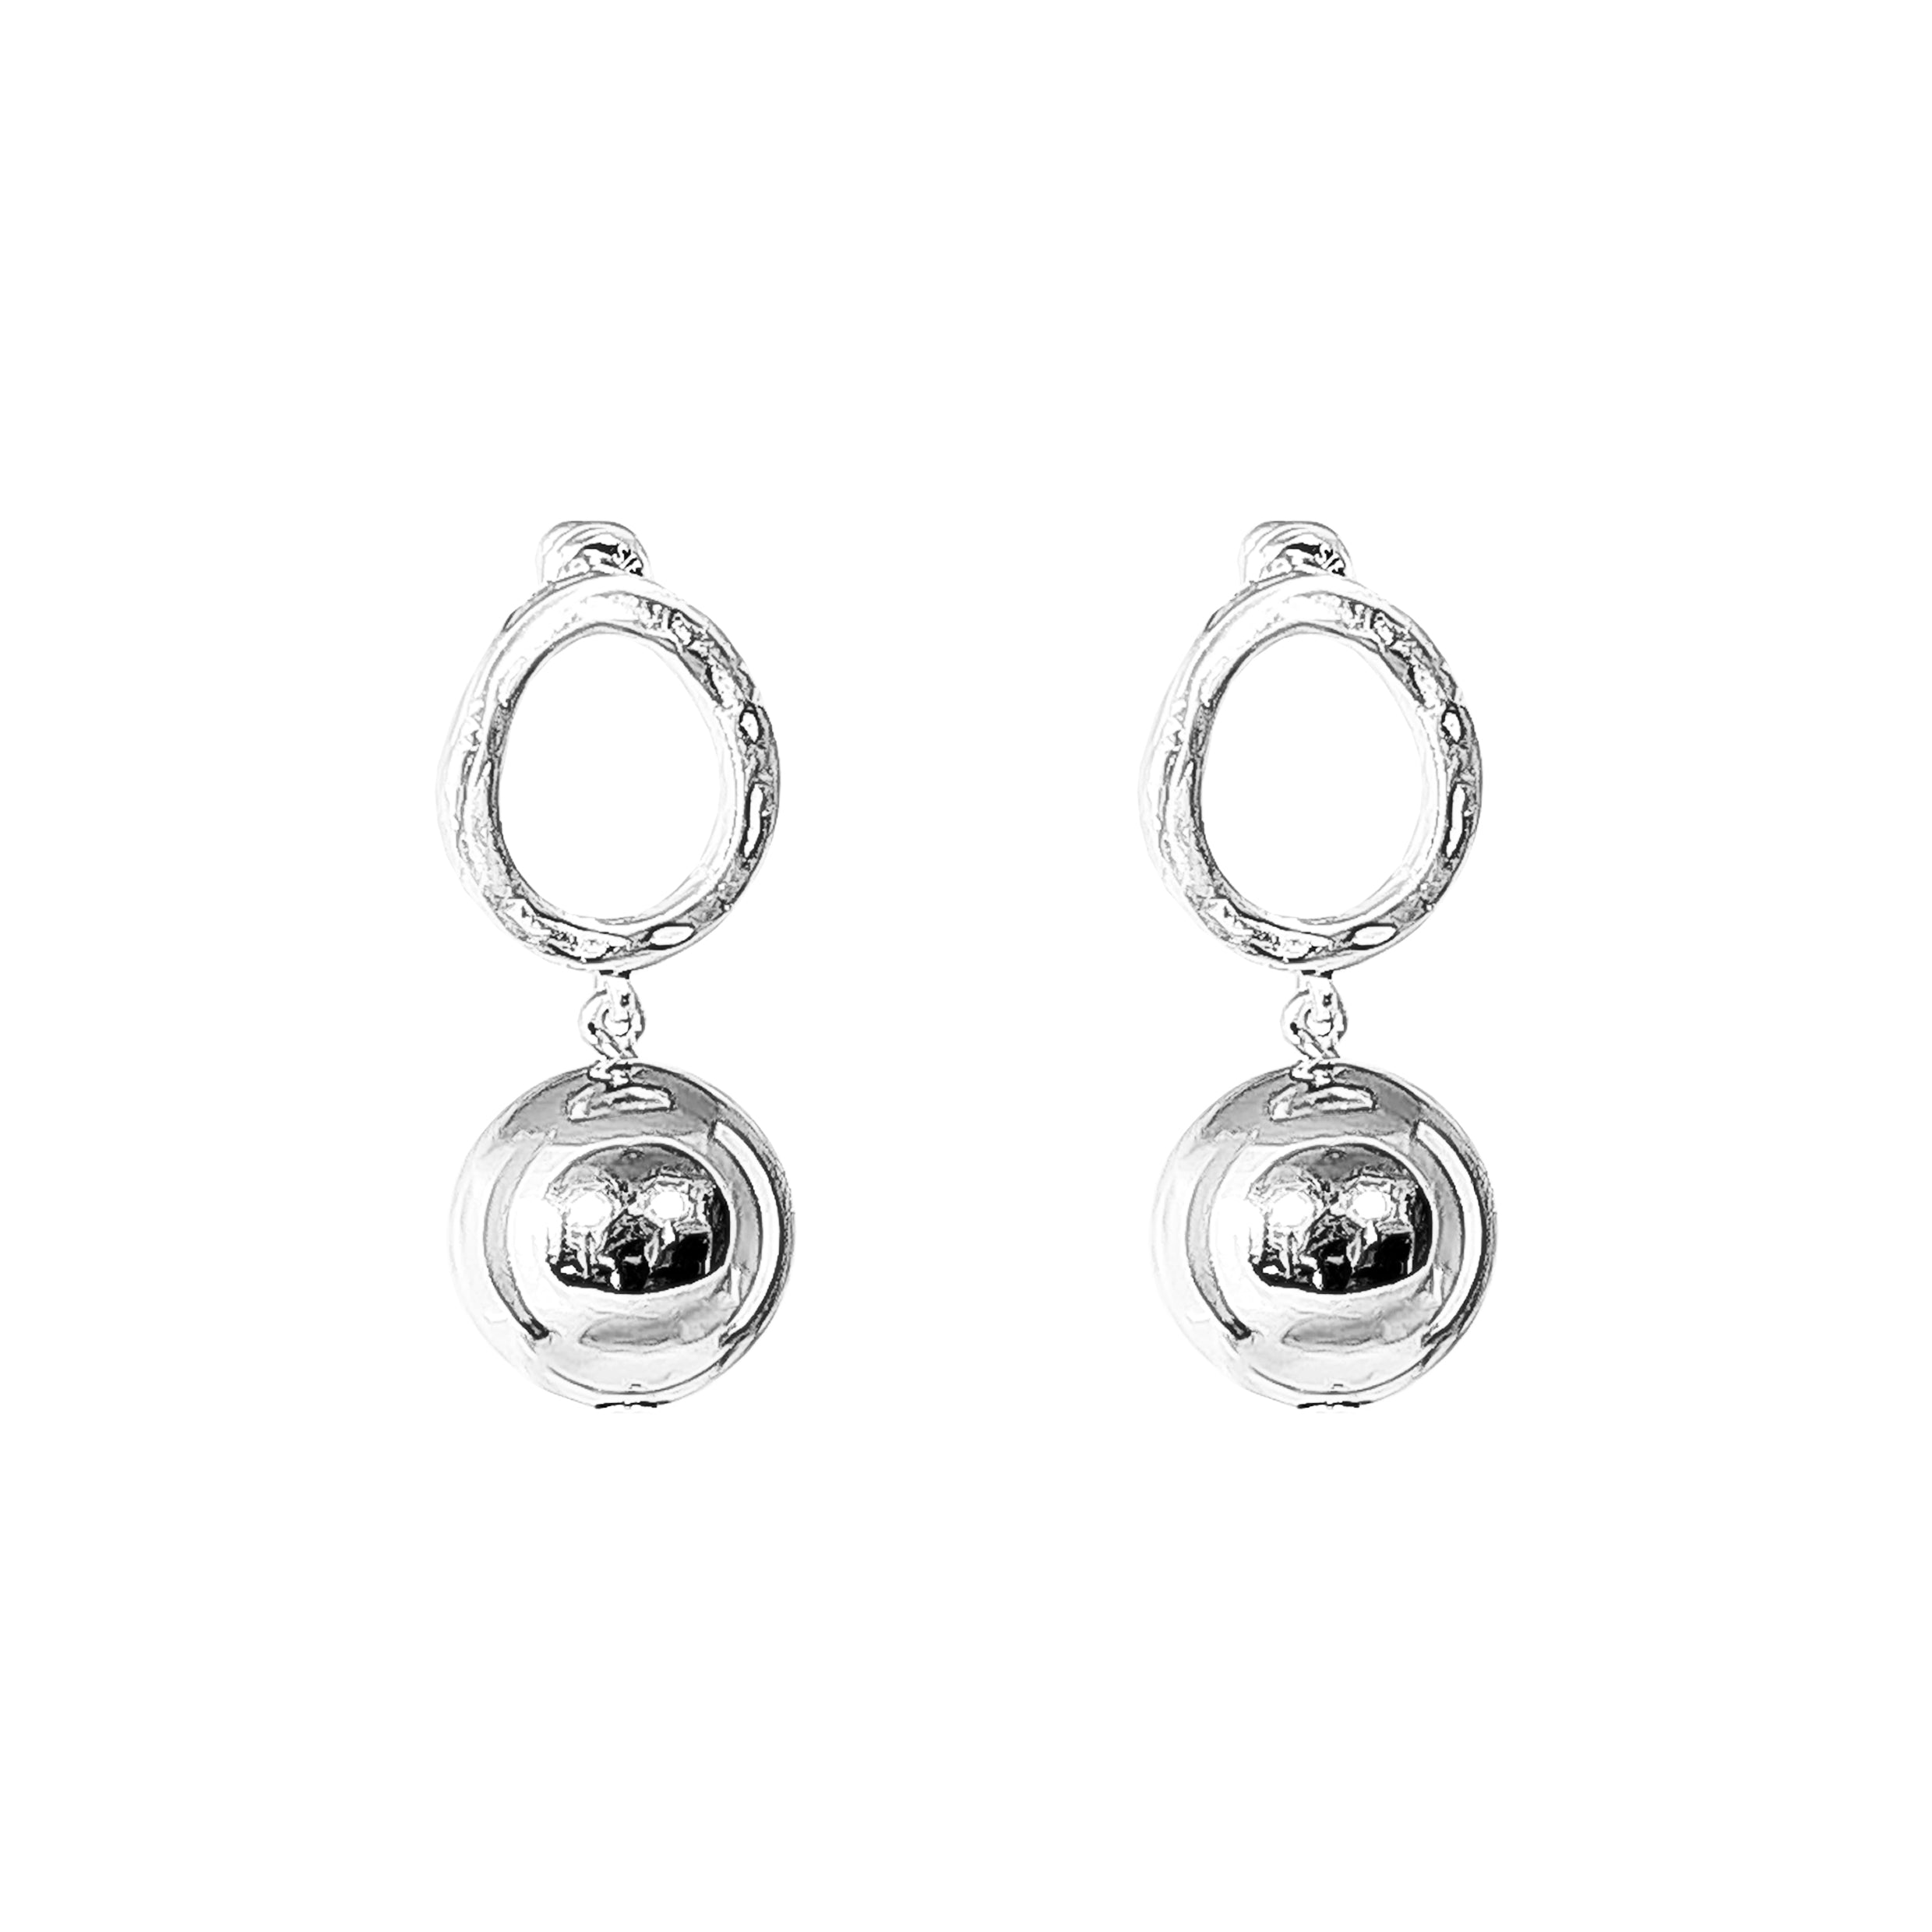 Paradis Stud Earrings | Large Polished Silver Detail